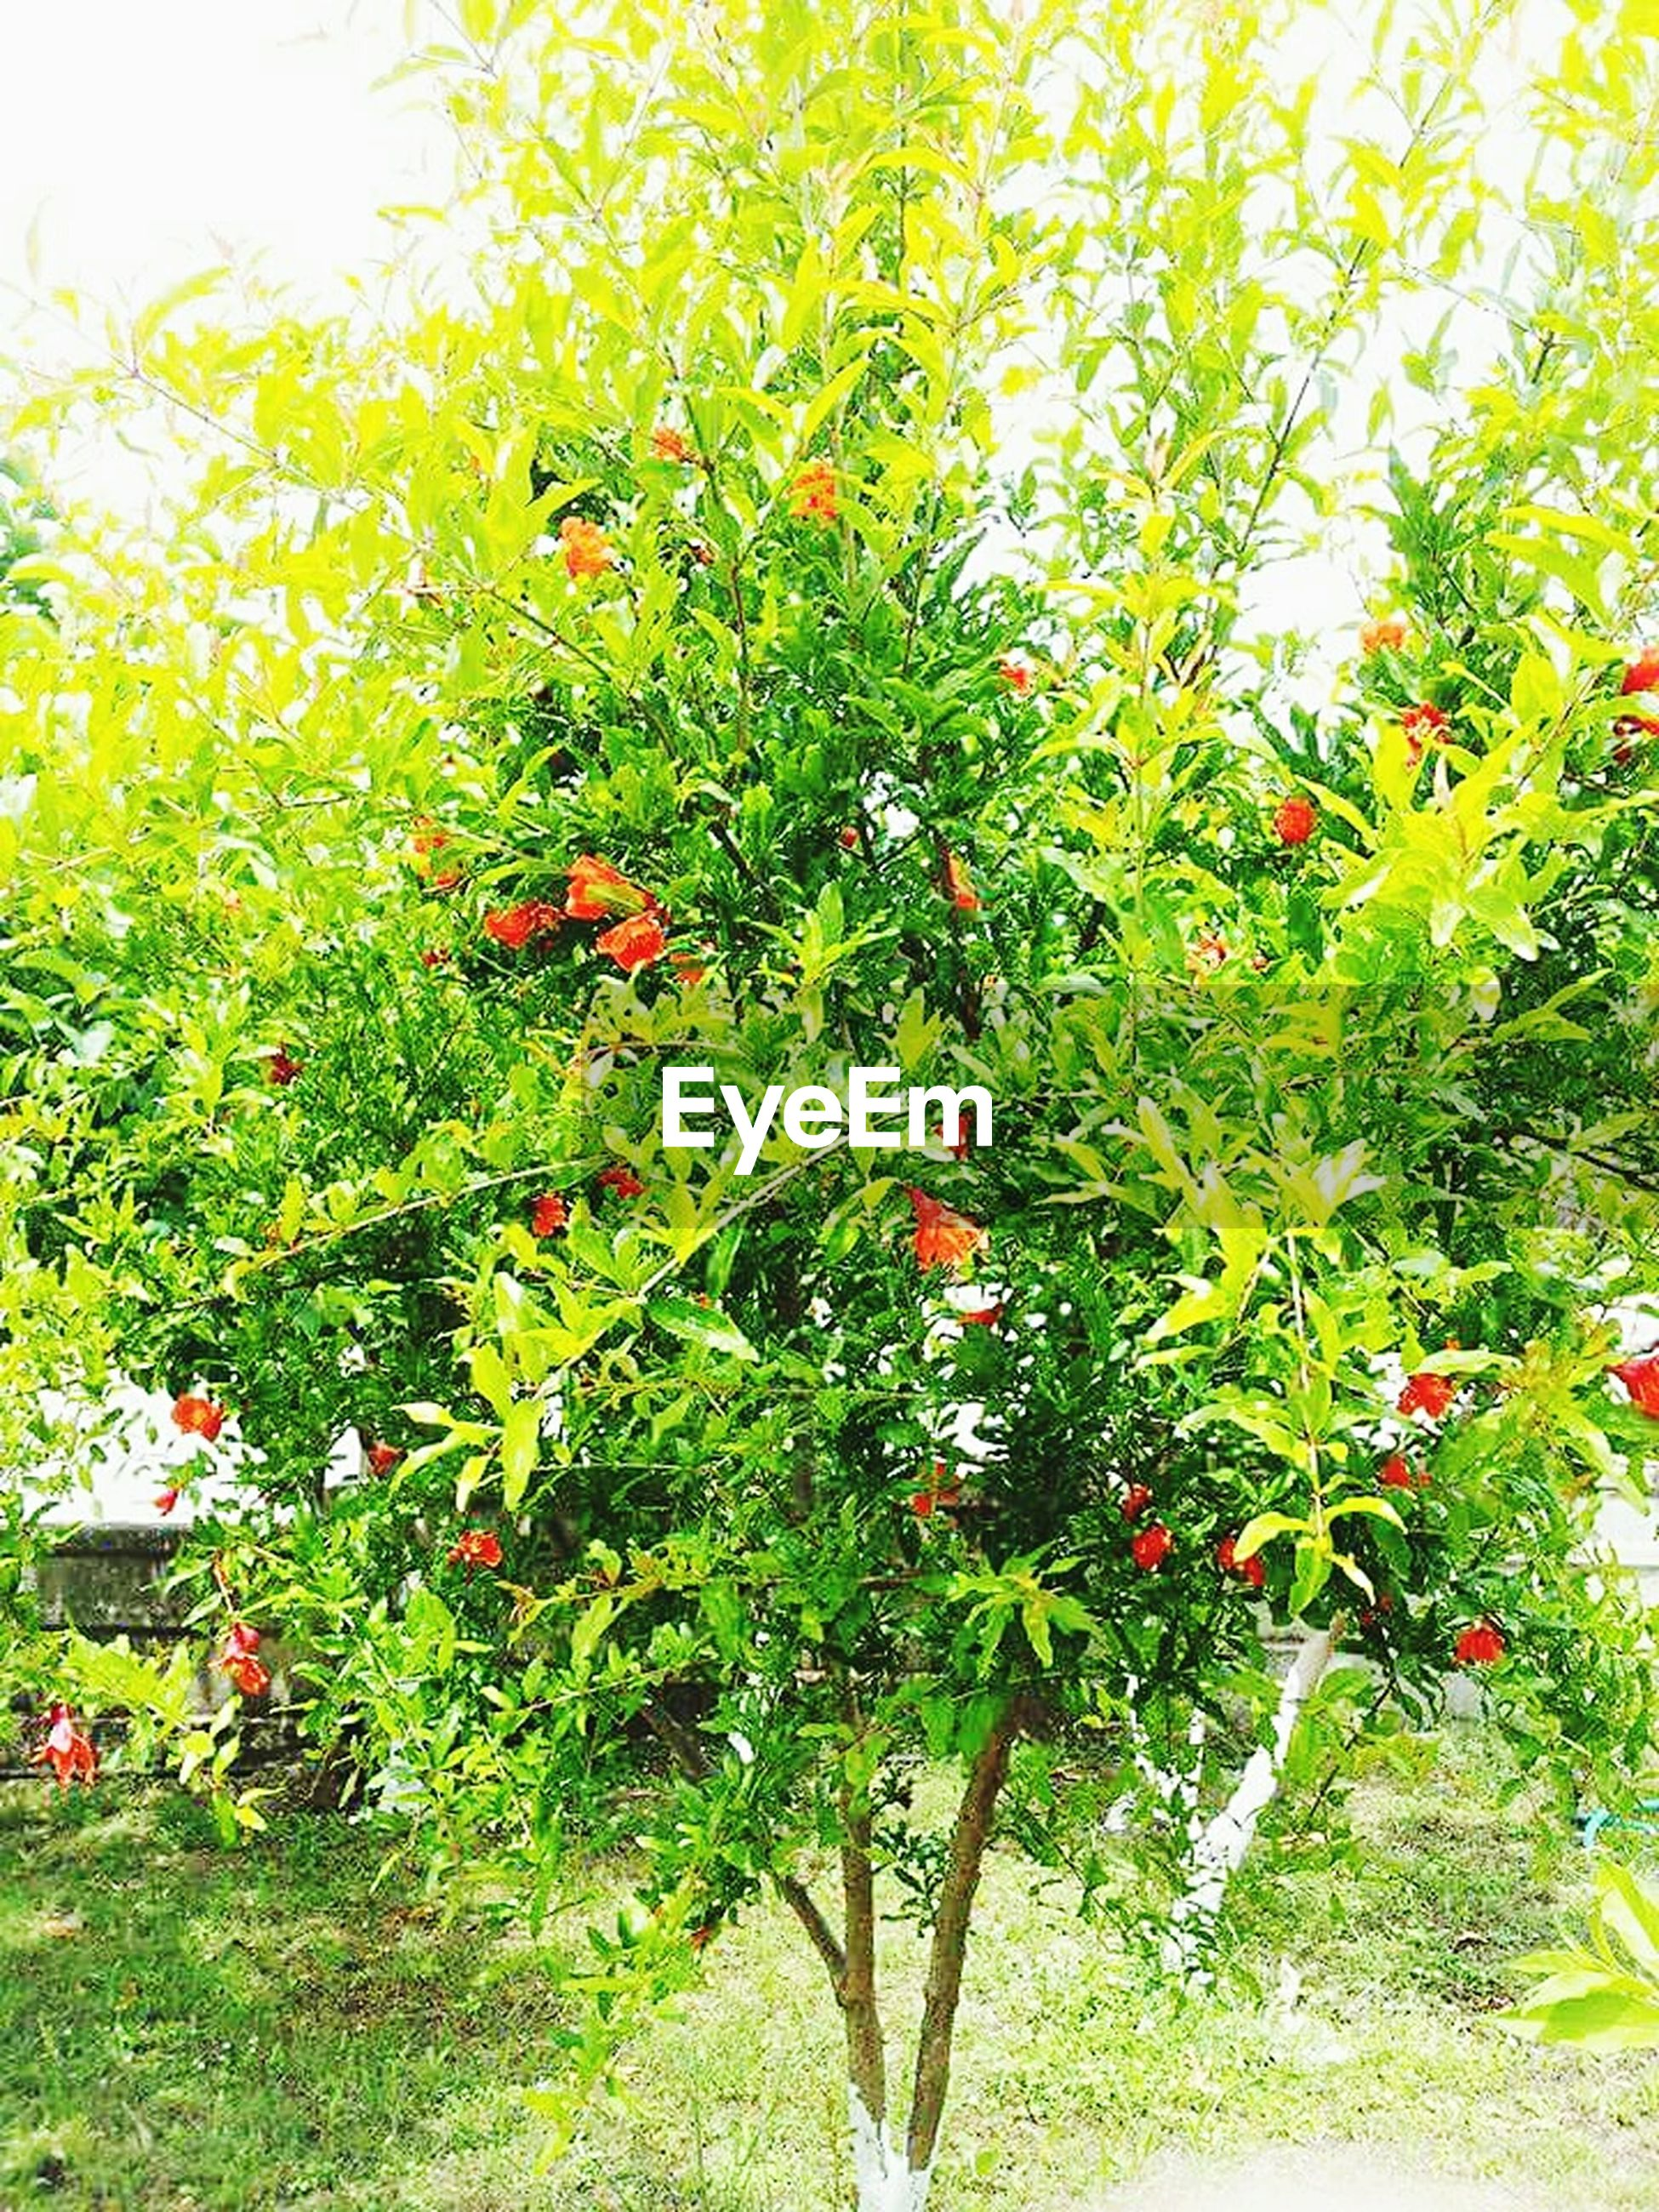 fruit, growth, food and drink, tree, green color, freshness, food, healthy eating, branch, nature, leaf, agriculture, plant, growing, ripe, red, beauty in nature, day, sunlight, vineyard